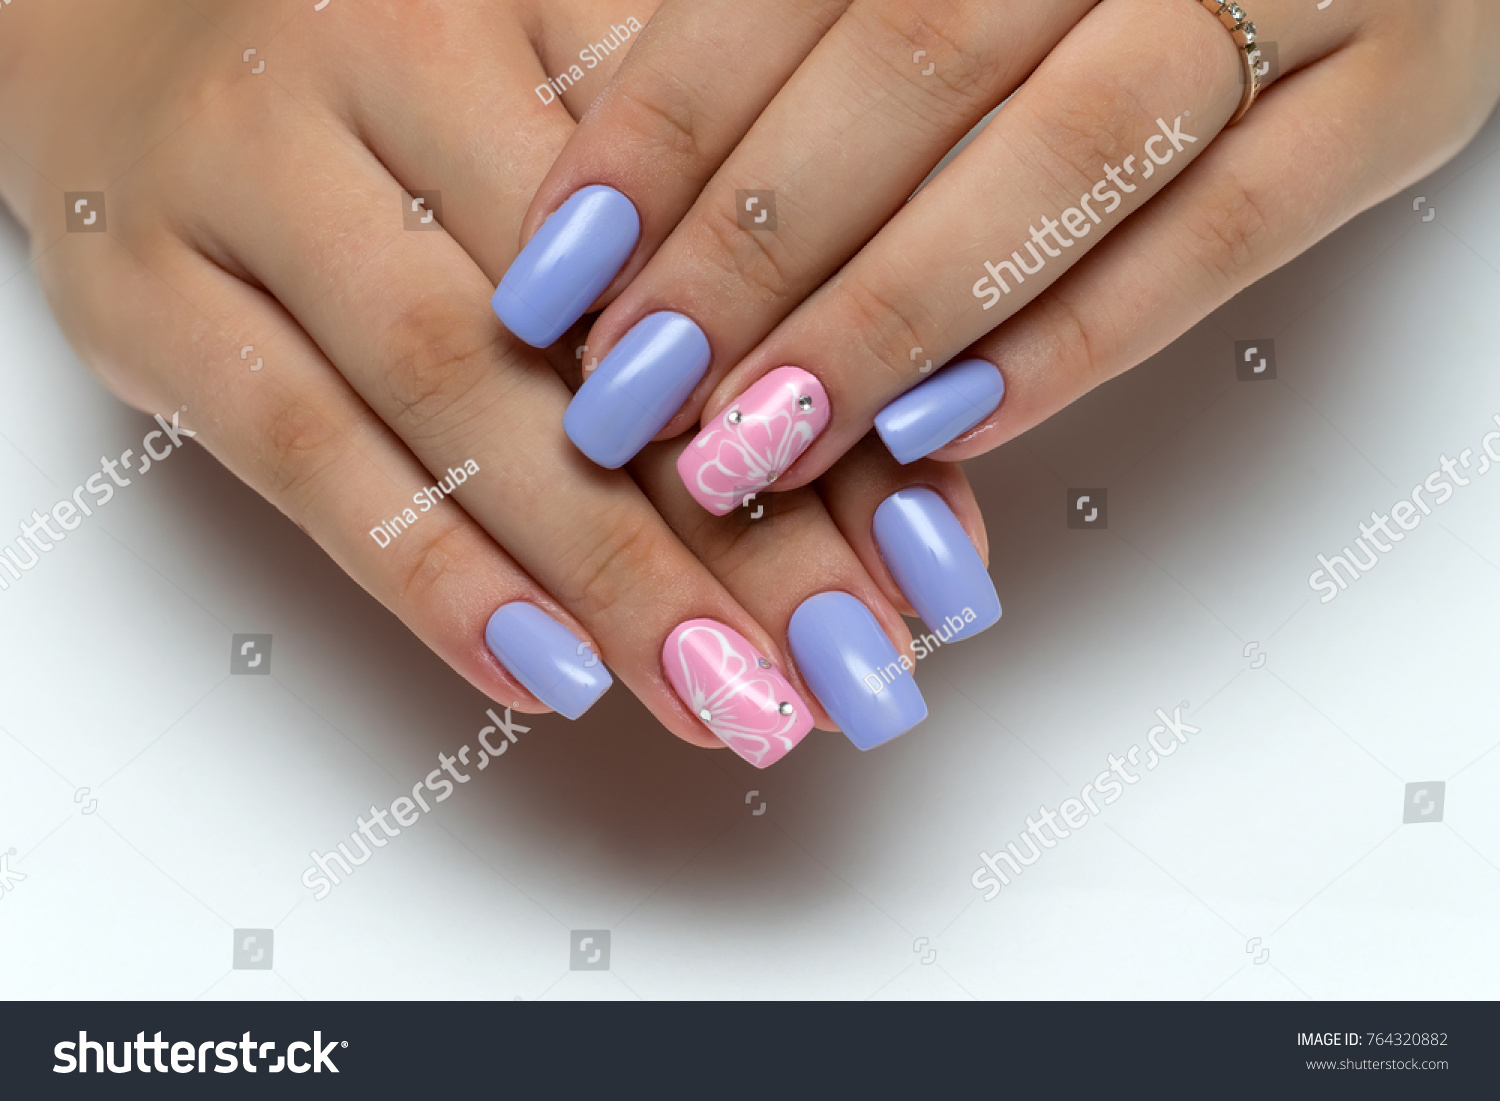 Delicate Violet Pink Manicure White Flowers Stock Photo 764320882 ...